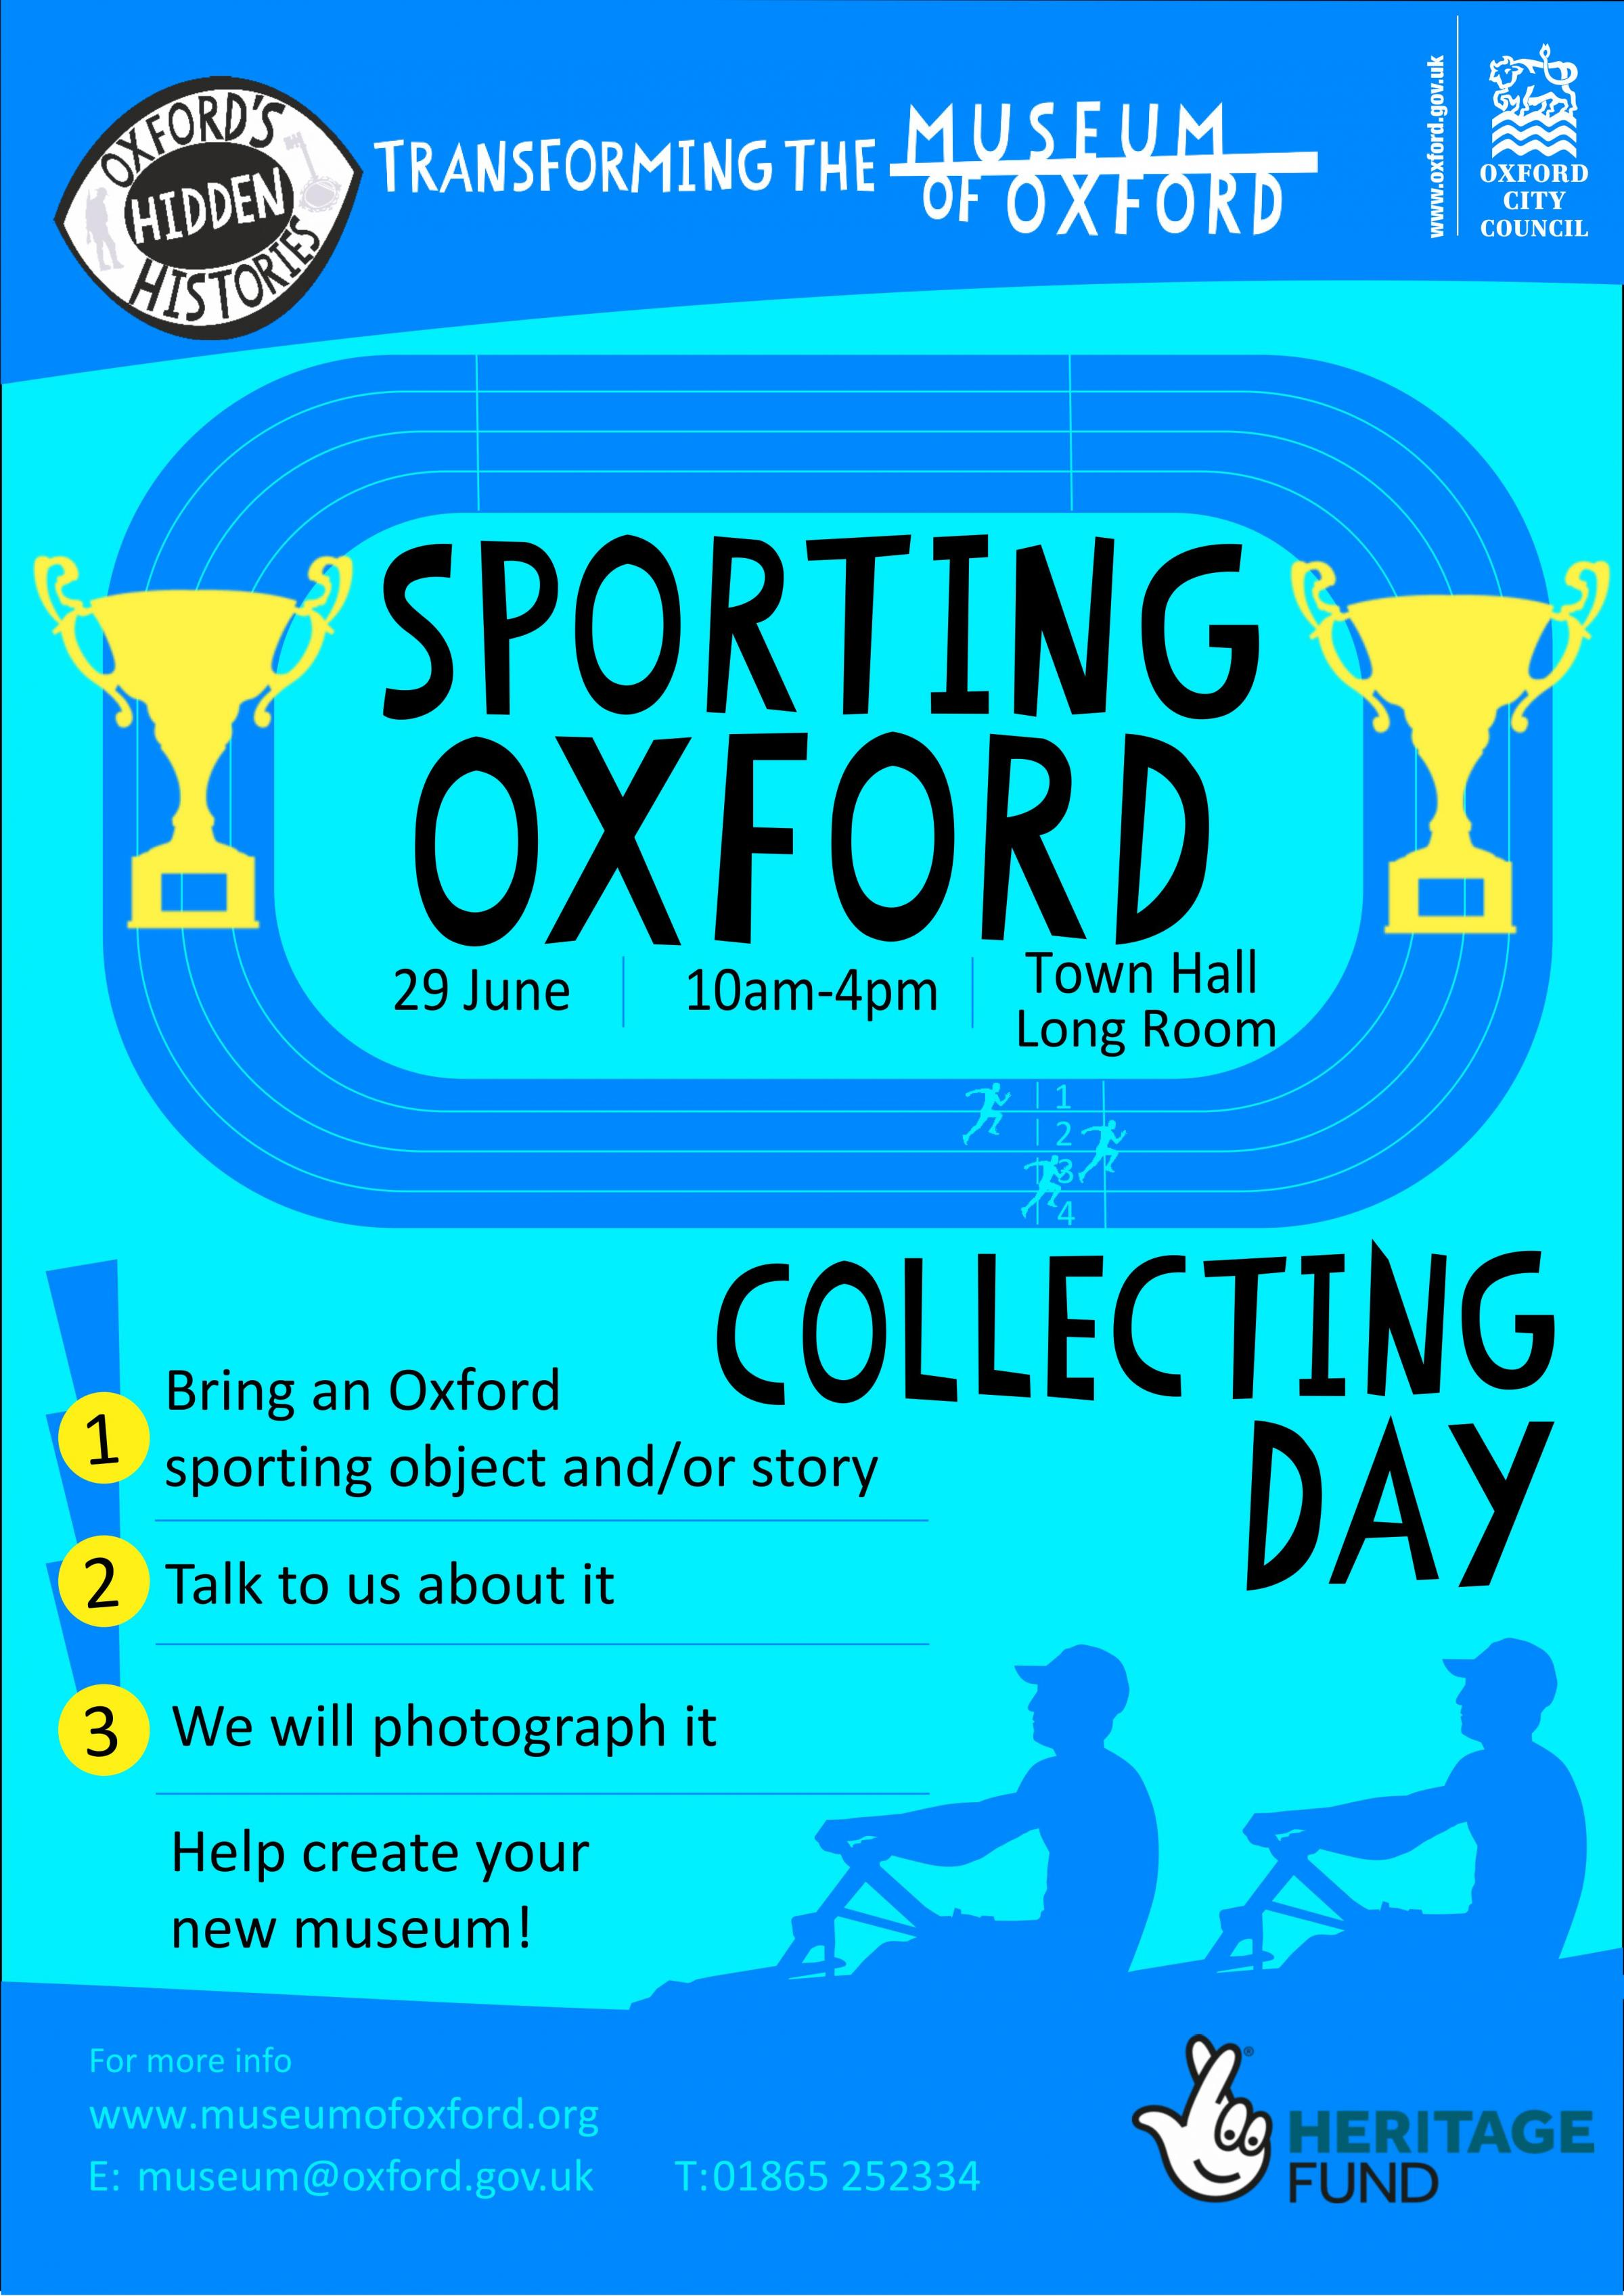 Sporting Oxford Community Collecting Day